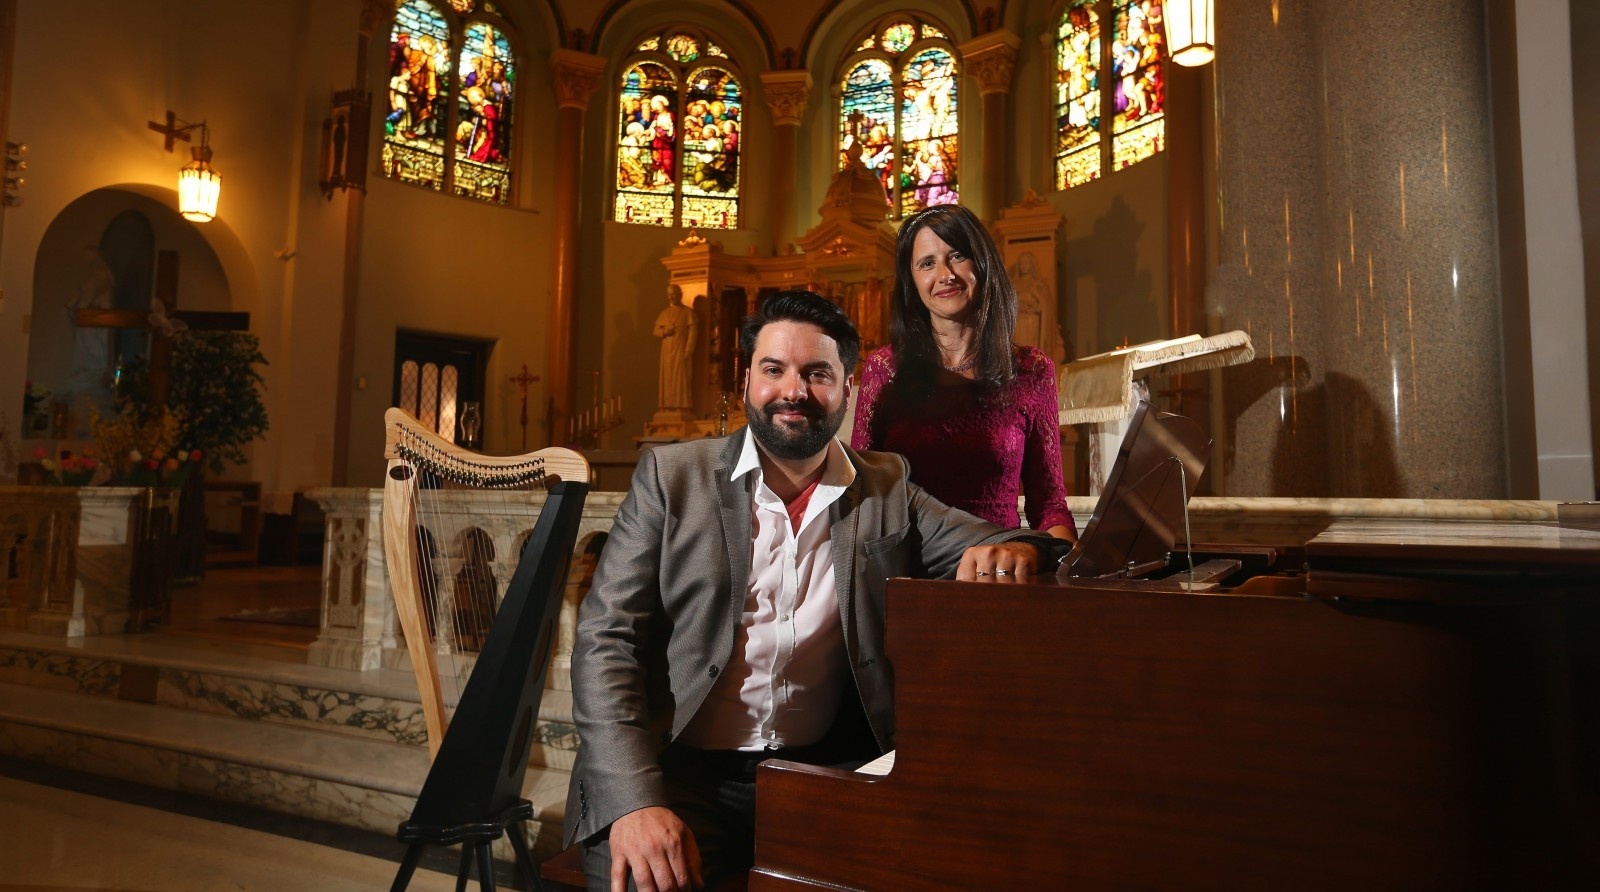 Cory James Gallagher and Amy Gallagher take a break from rehearsing at Holy Family Church on Monday.